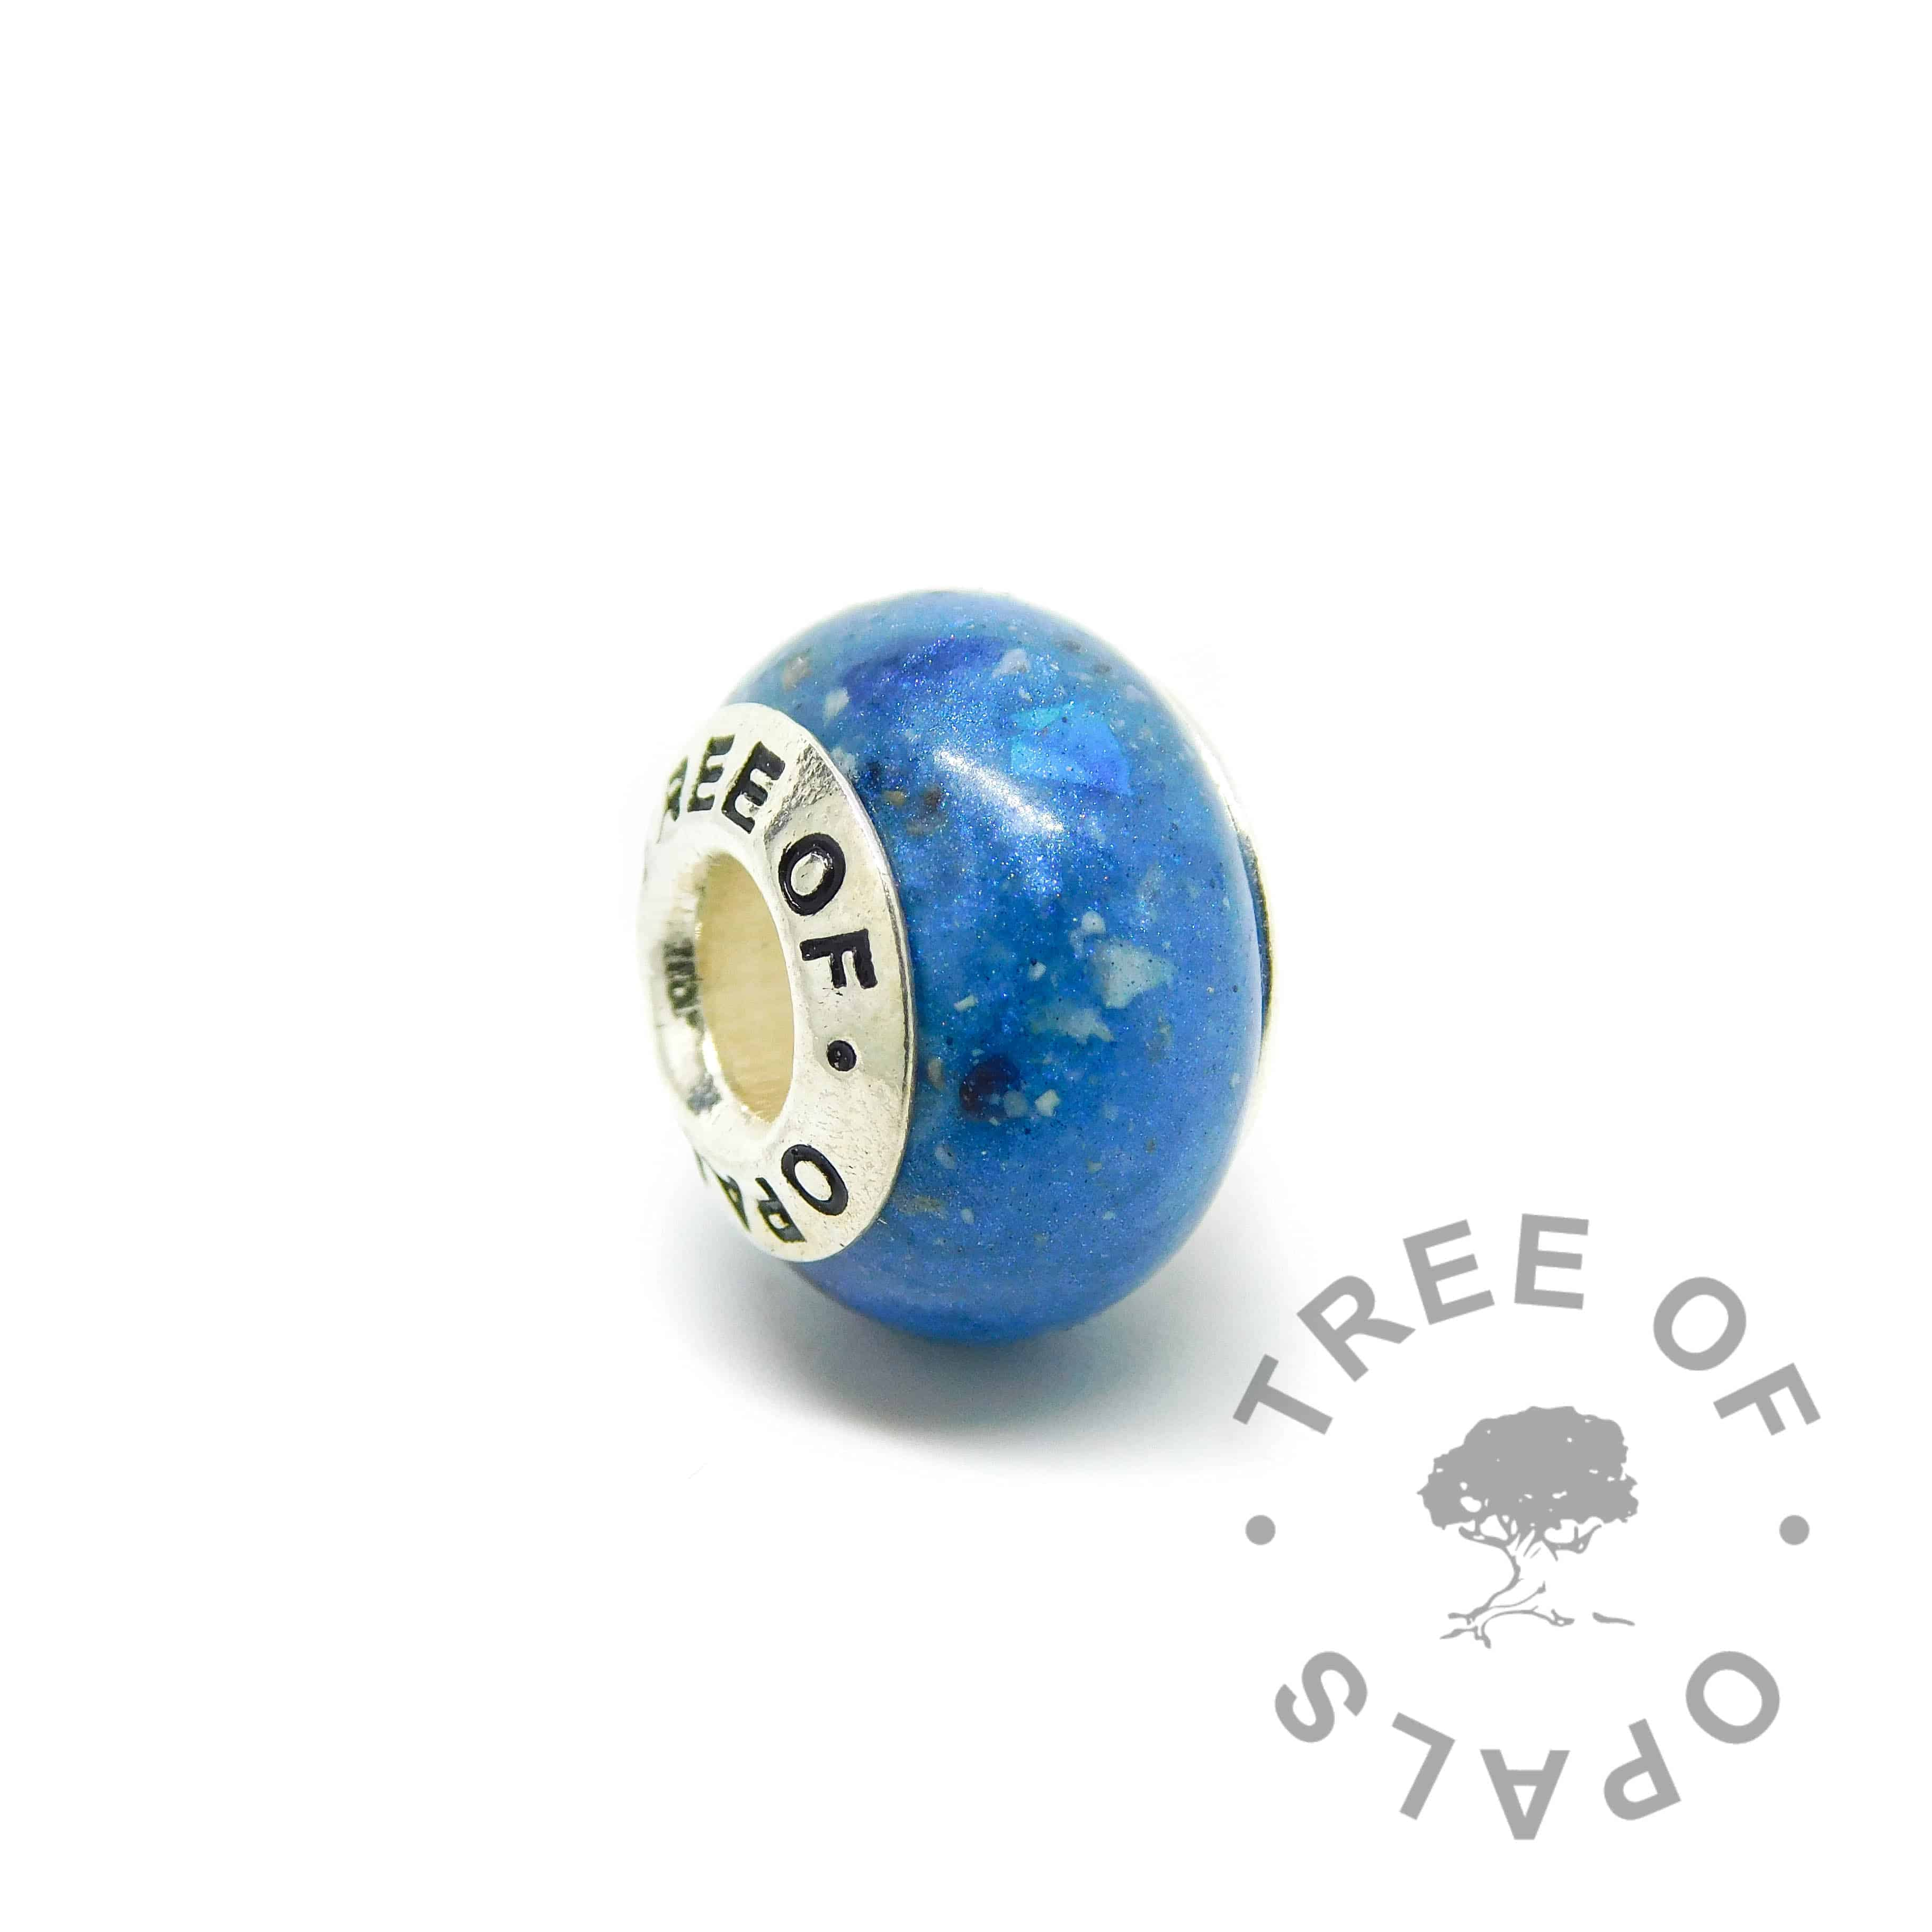 cremation ash charm with vivid blue resin sparkle mix, rough natural sapphire September birthstone. Solid sterling silver Tree of Opals signature core (925 stamped on the back). Watermarked copyright Tree of Opals memorial jewellery image